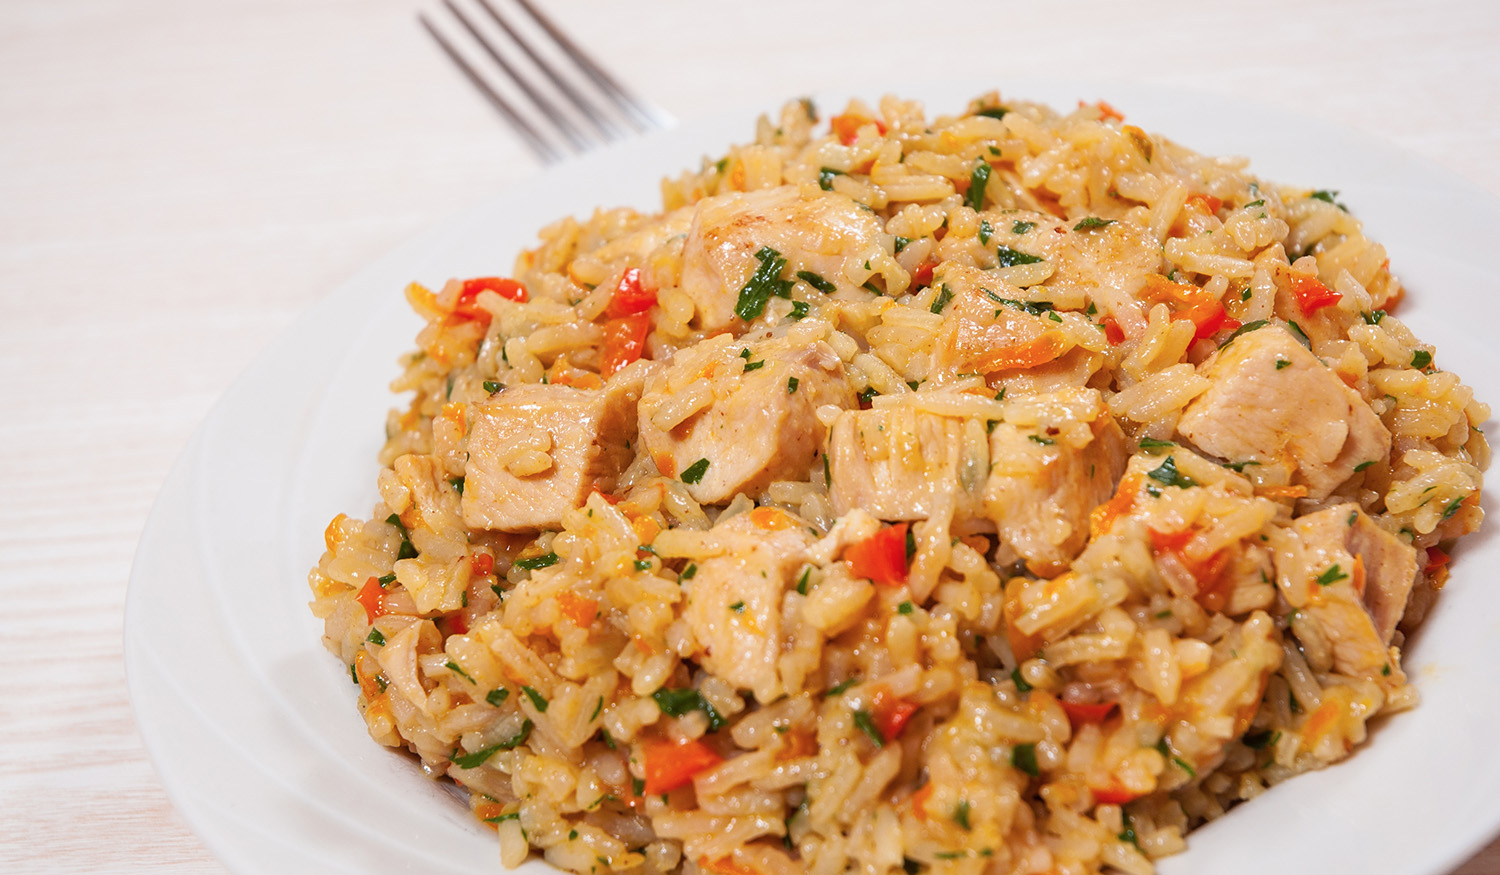 Chicken or shrimp fried rice